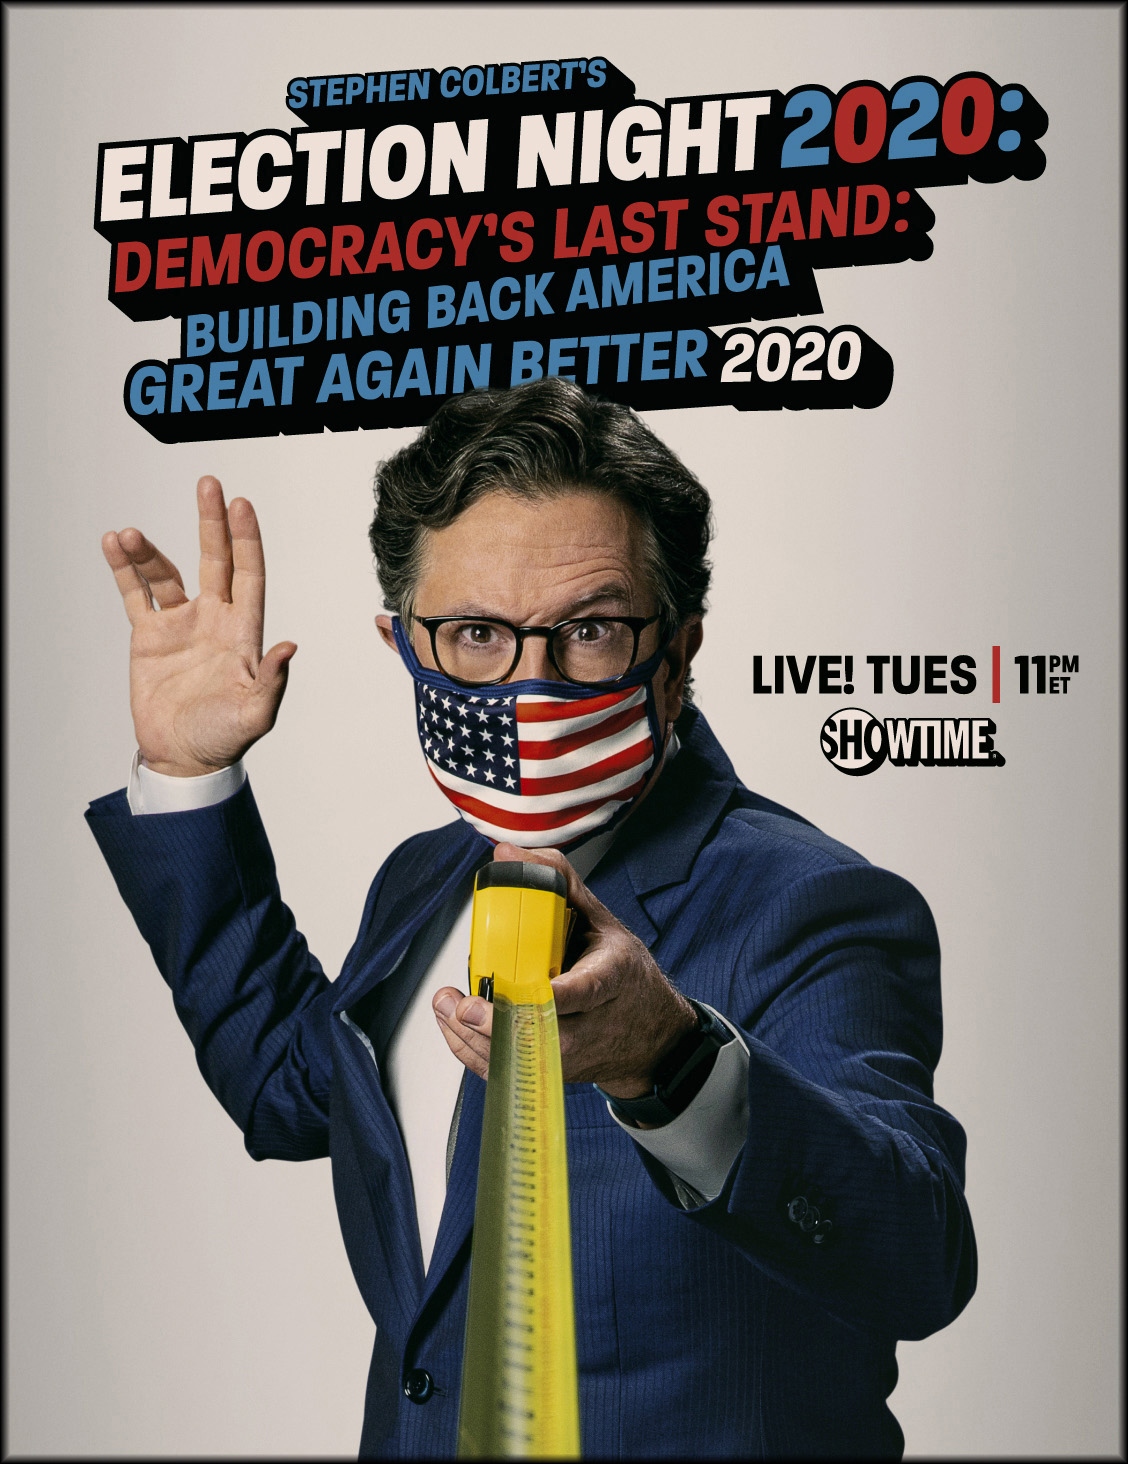 Stephen Colbert Showtime 2020 Election Special